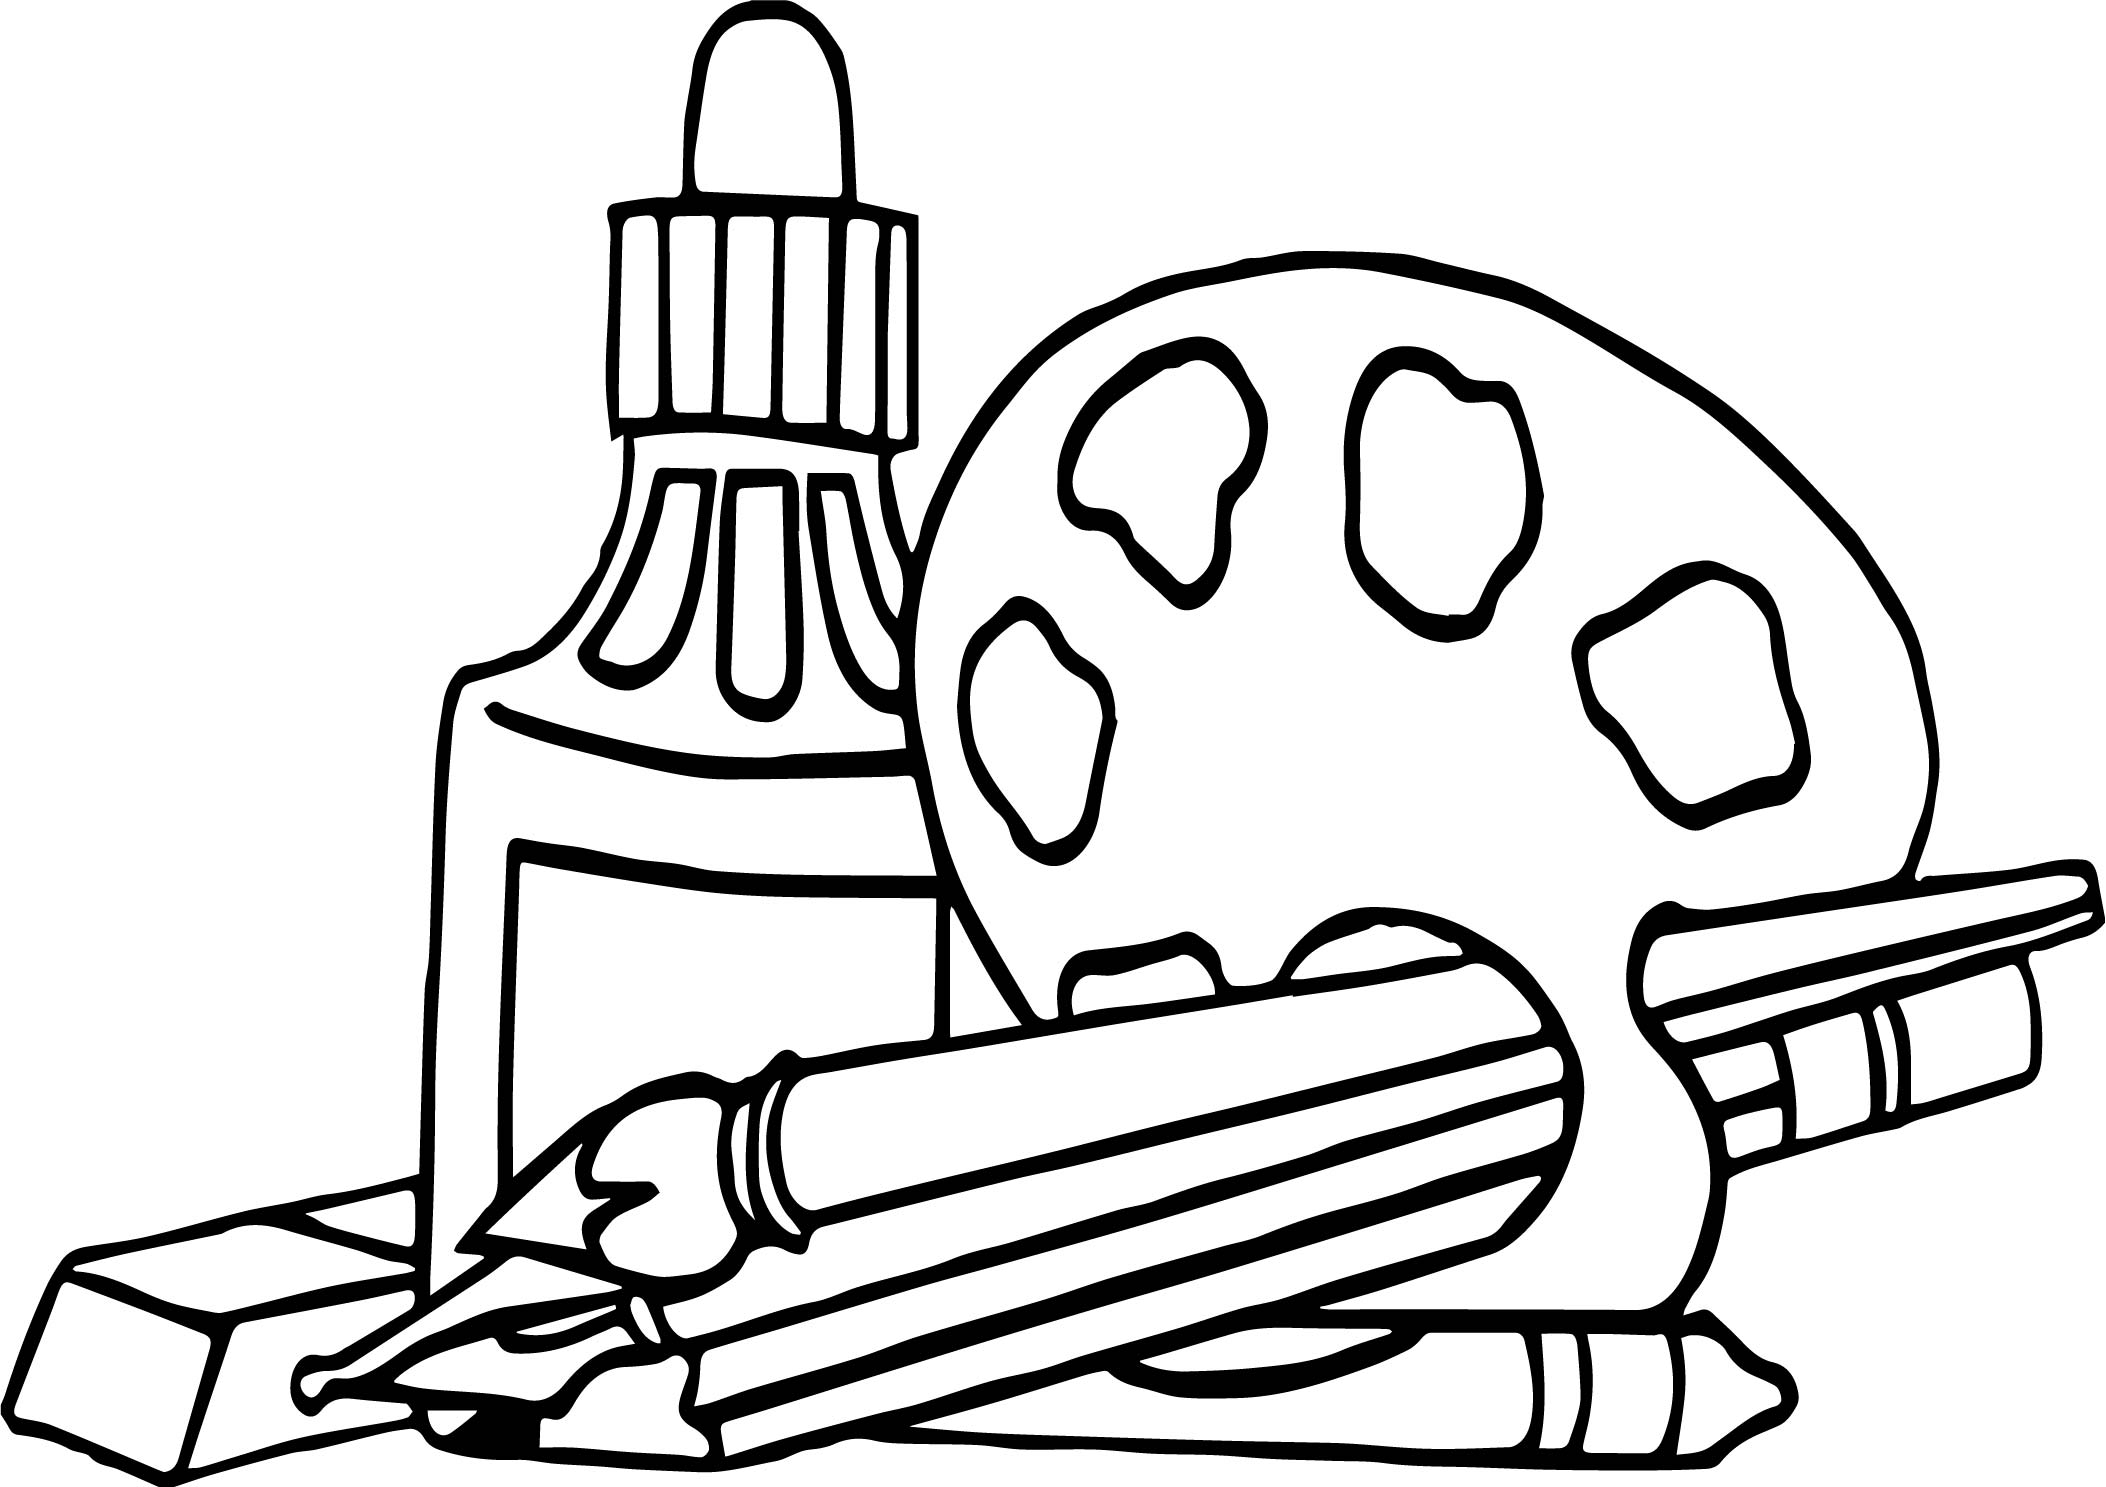 nap art supplies coloring page wecoloringpage